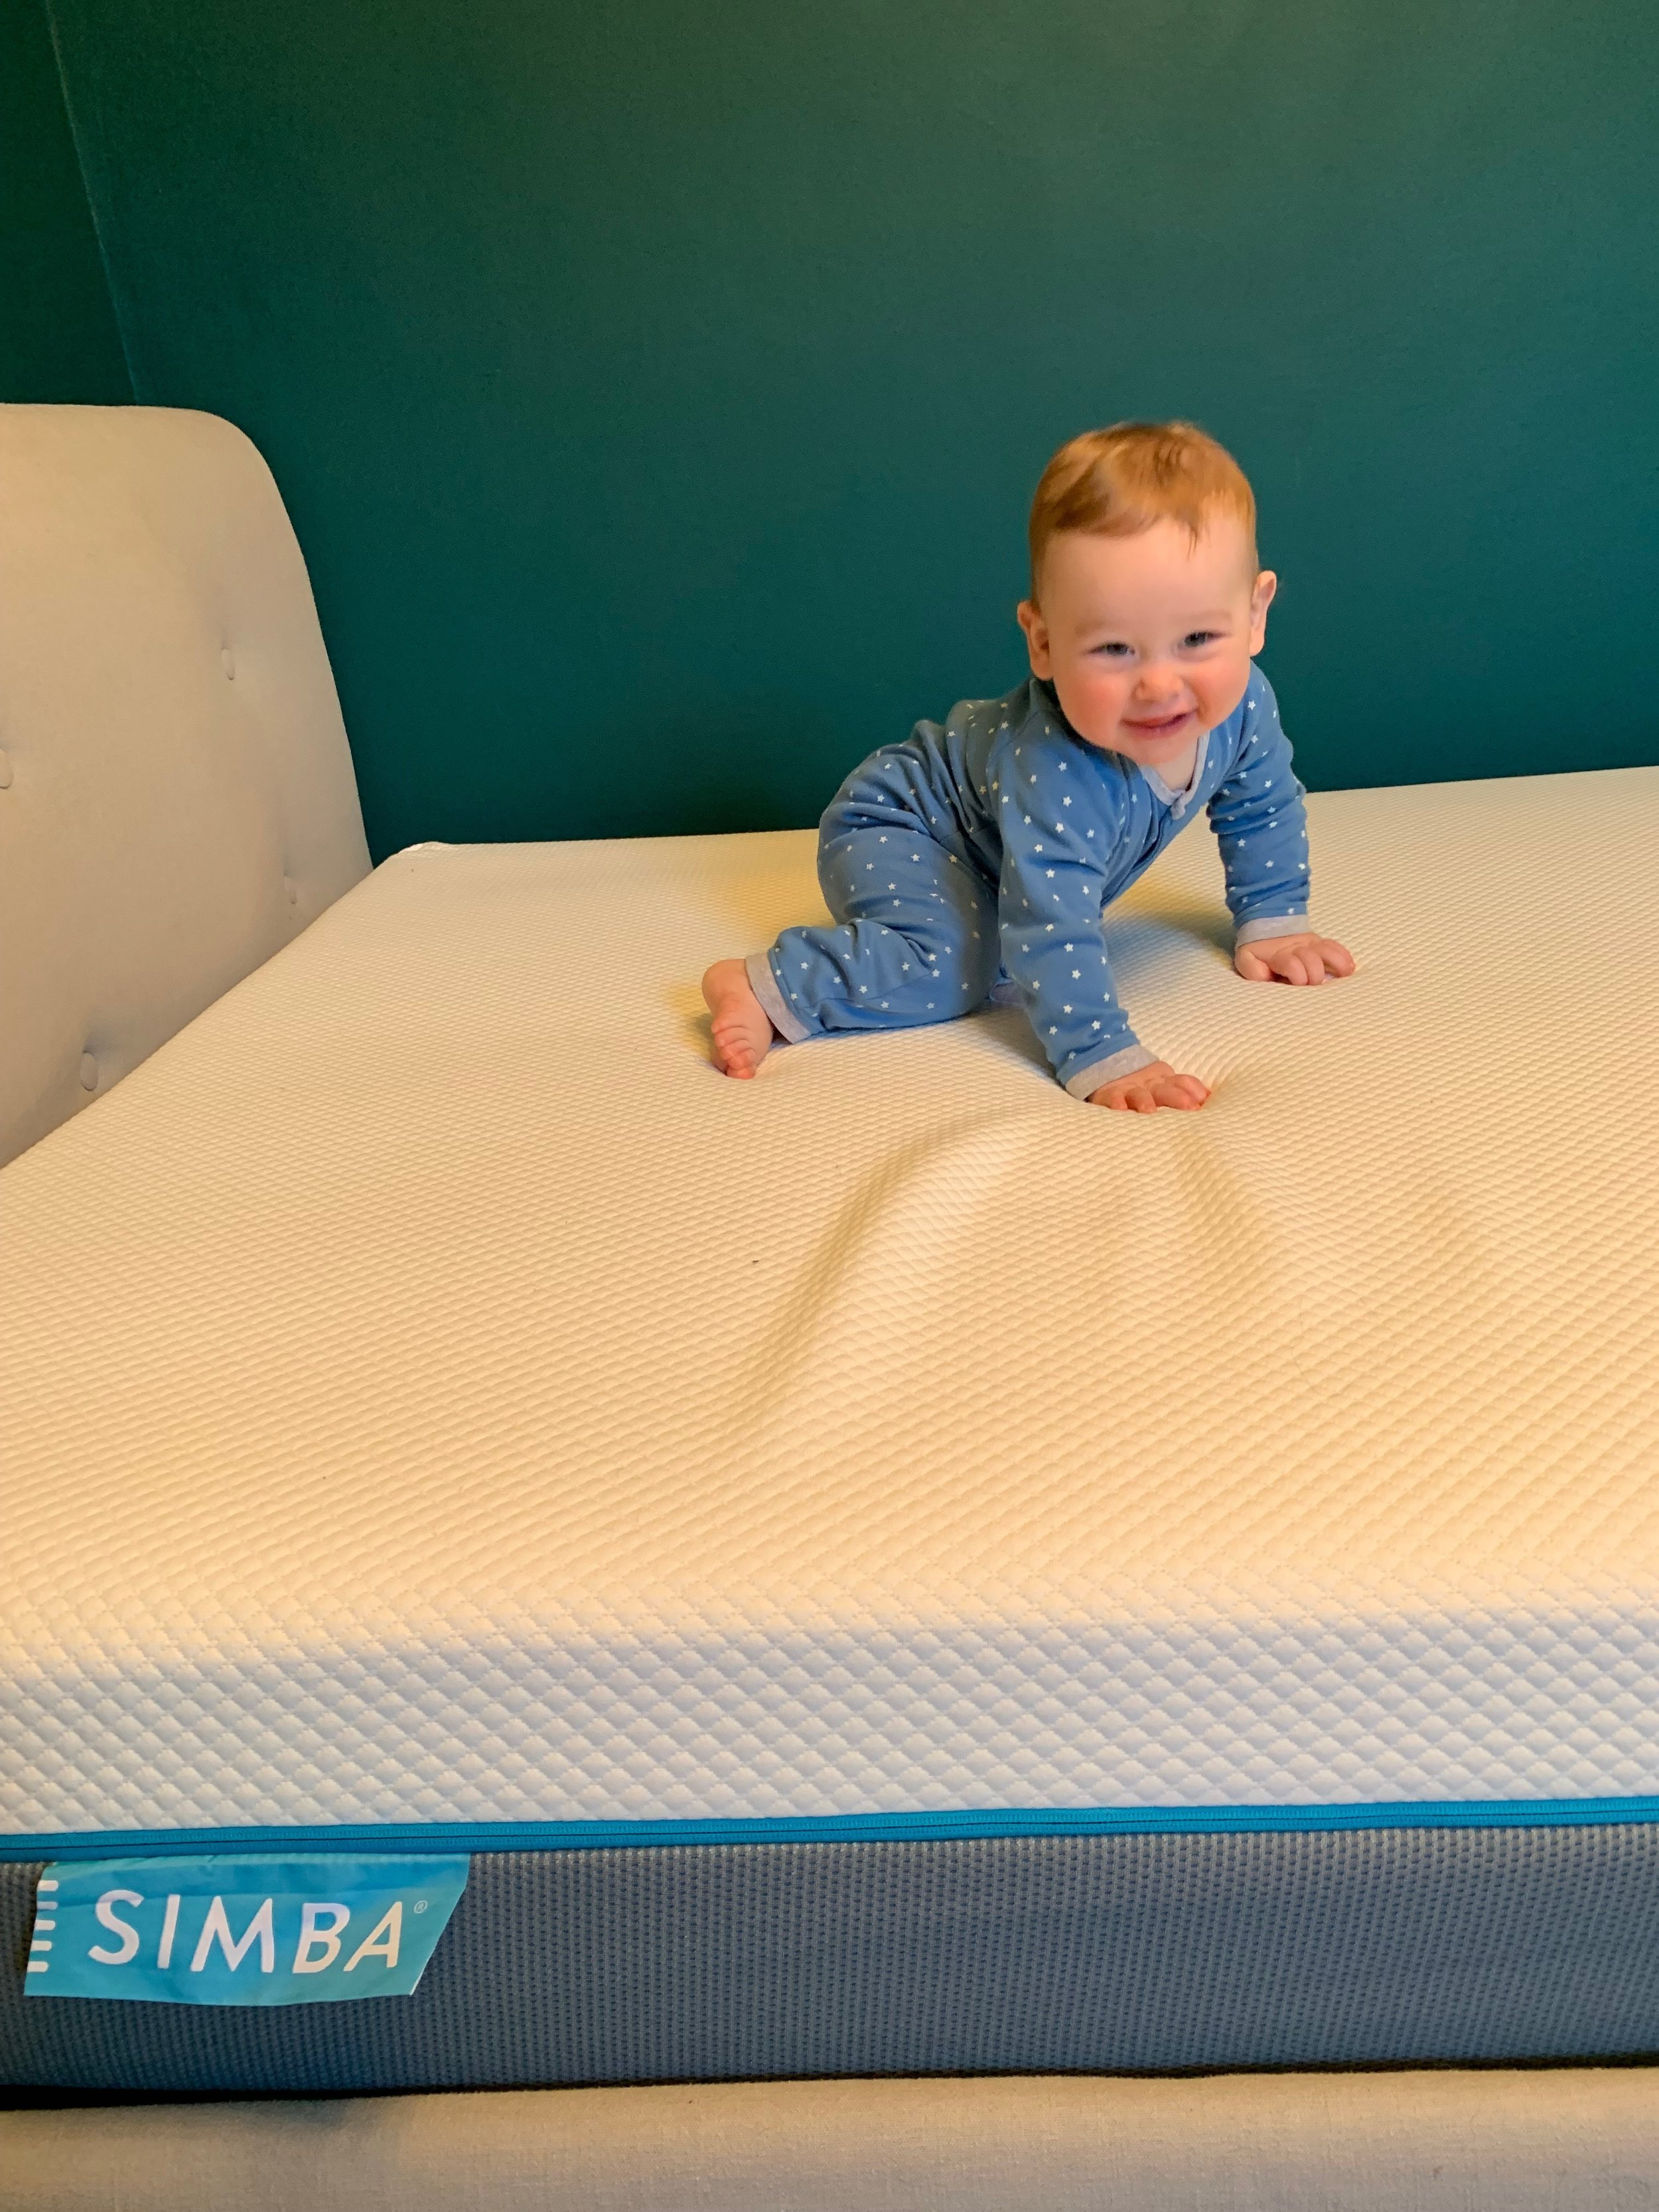 Simba sleep Hybrid mattress Review